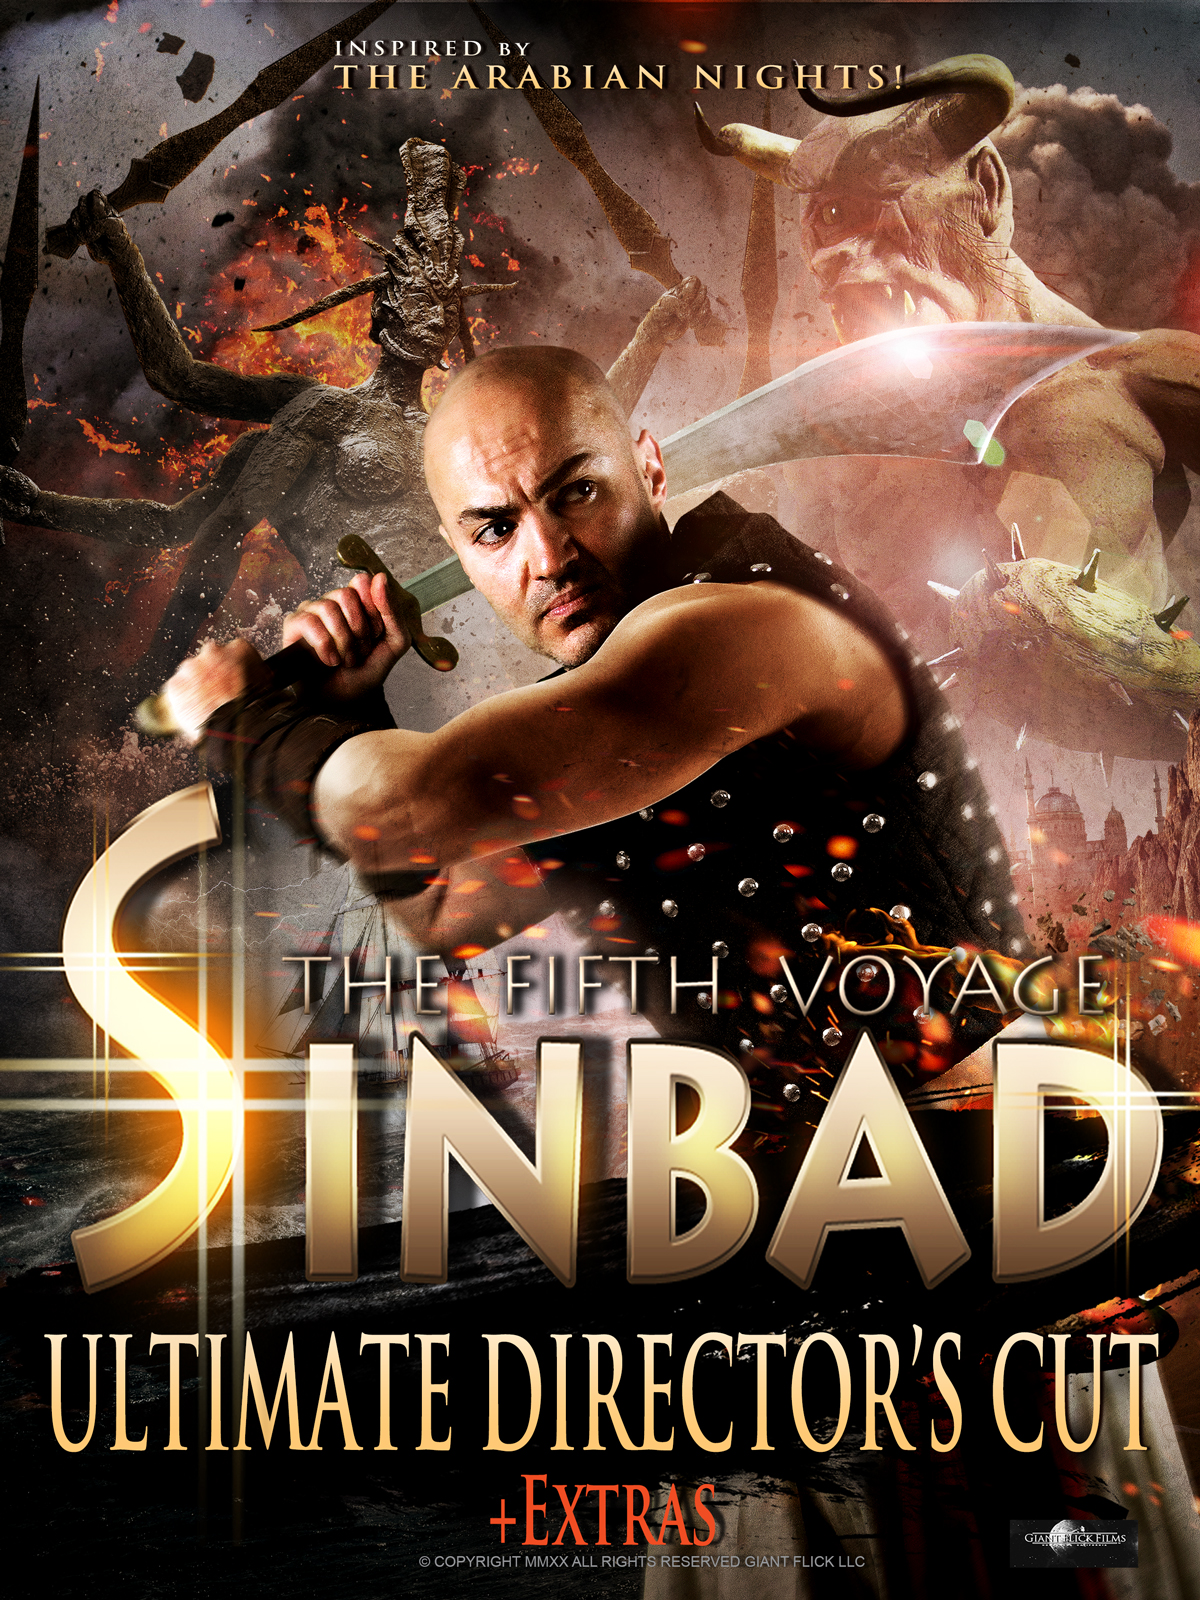 Sinbad The Sailor's Fifth Voyage Reemerges in Ultimate Director's Cut (2020) Available Now on Prime Video